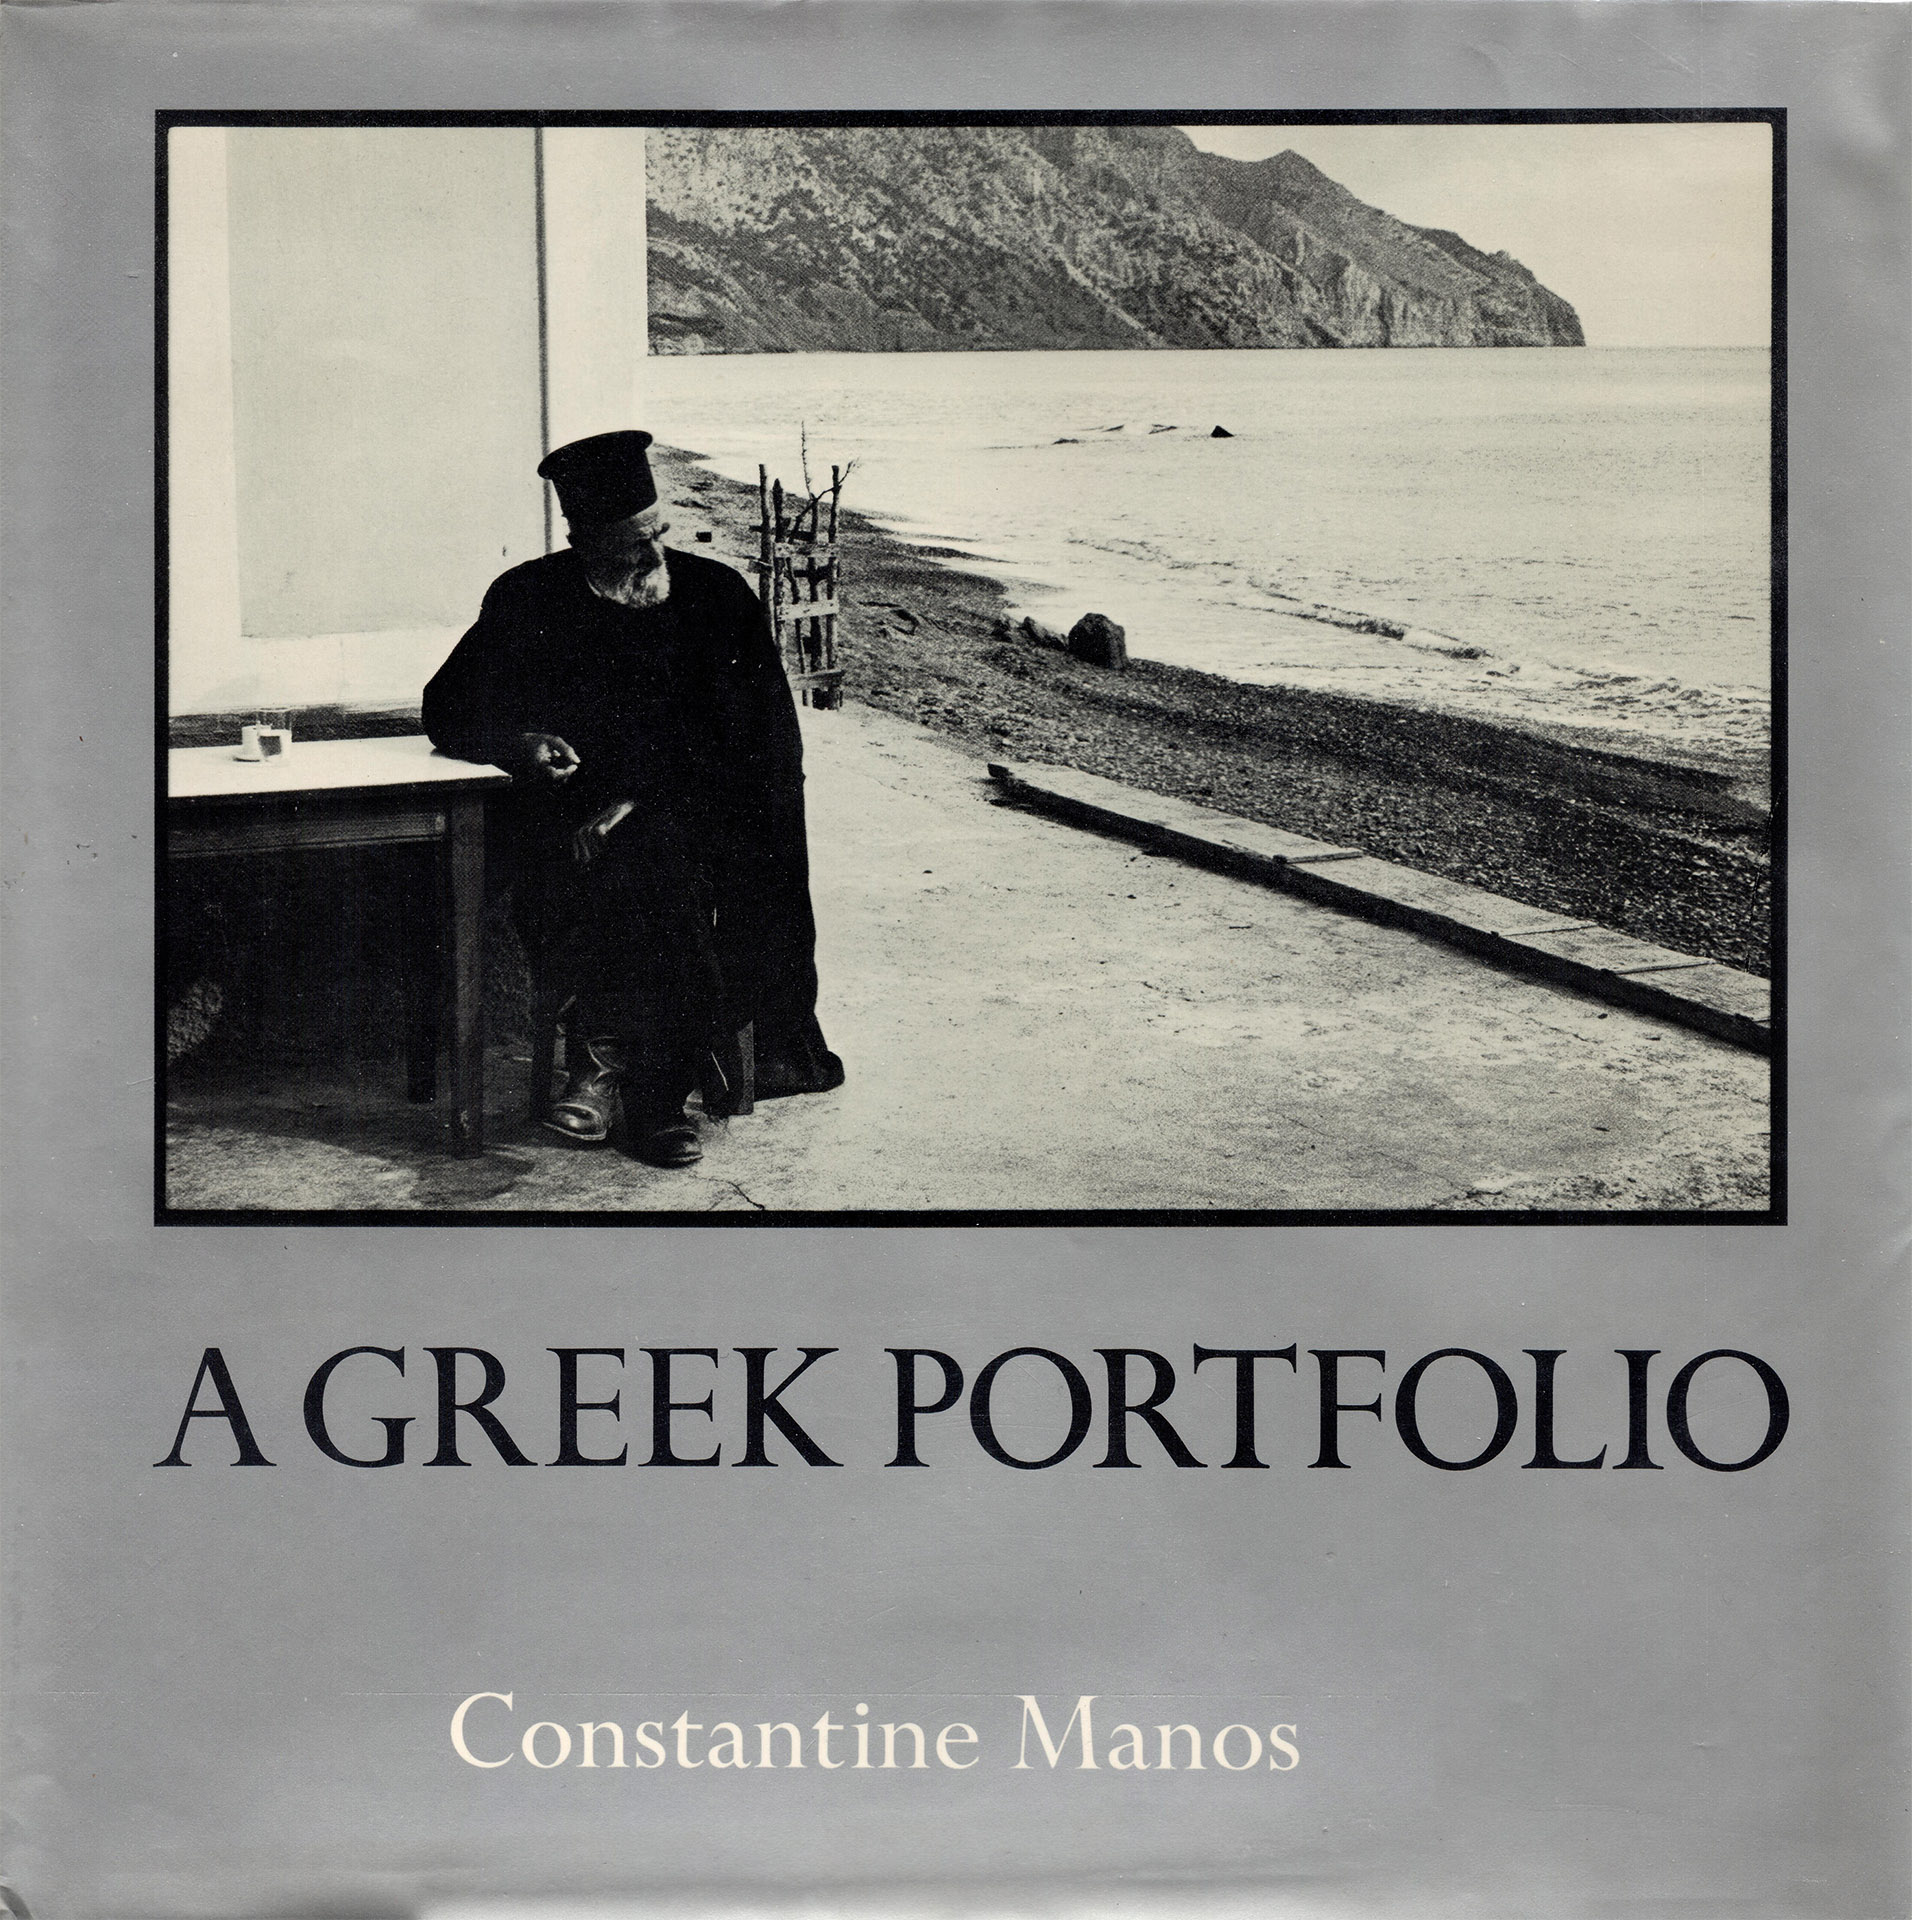 1. A GREEK PORTFOLIO - CONSTANTINE MANOS - THE VIKING PRESS - NEW YORK[1972]